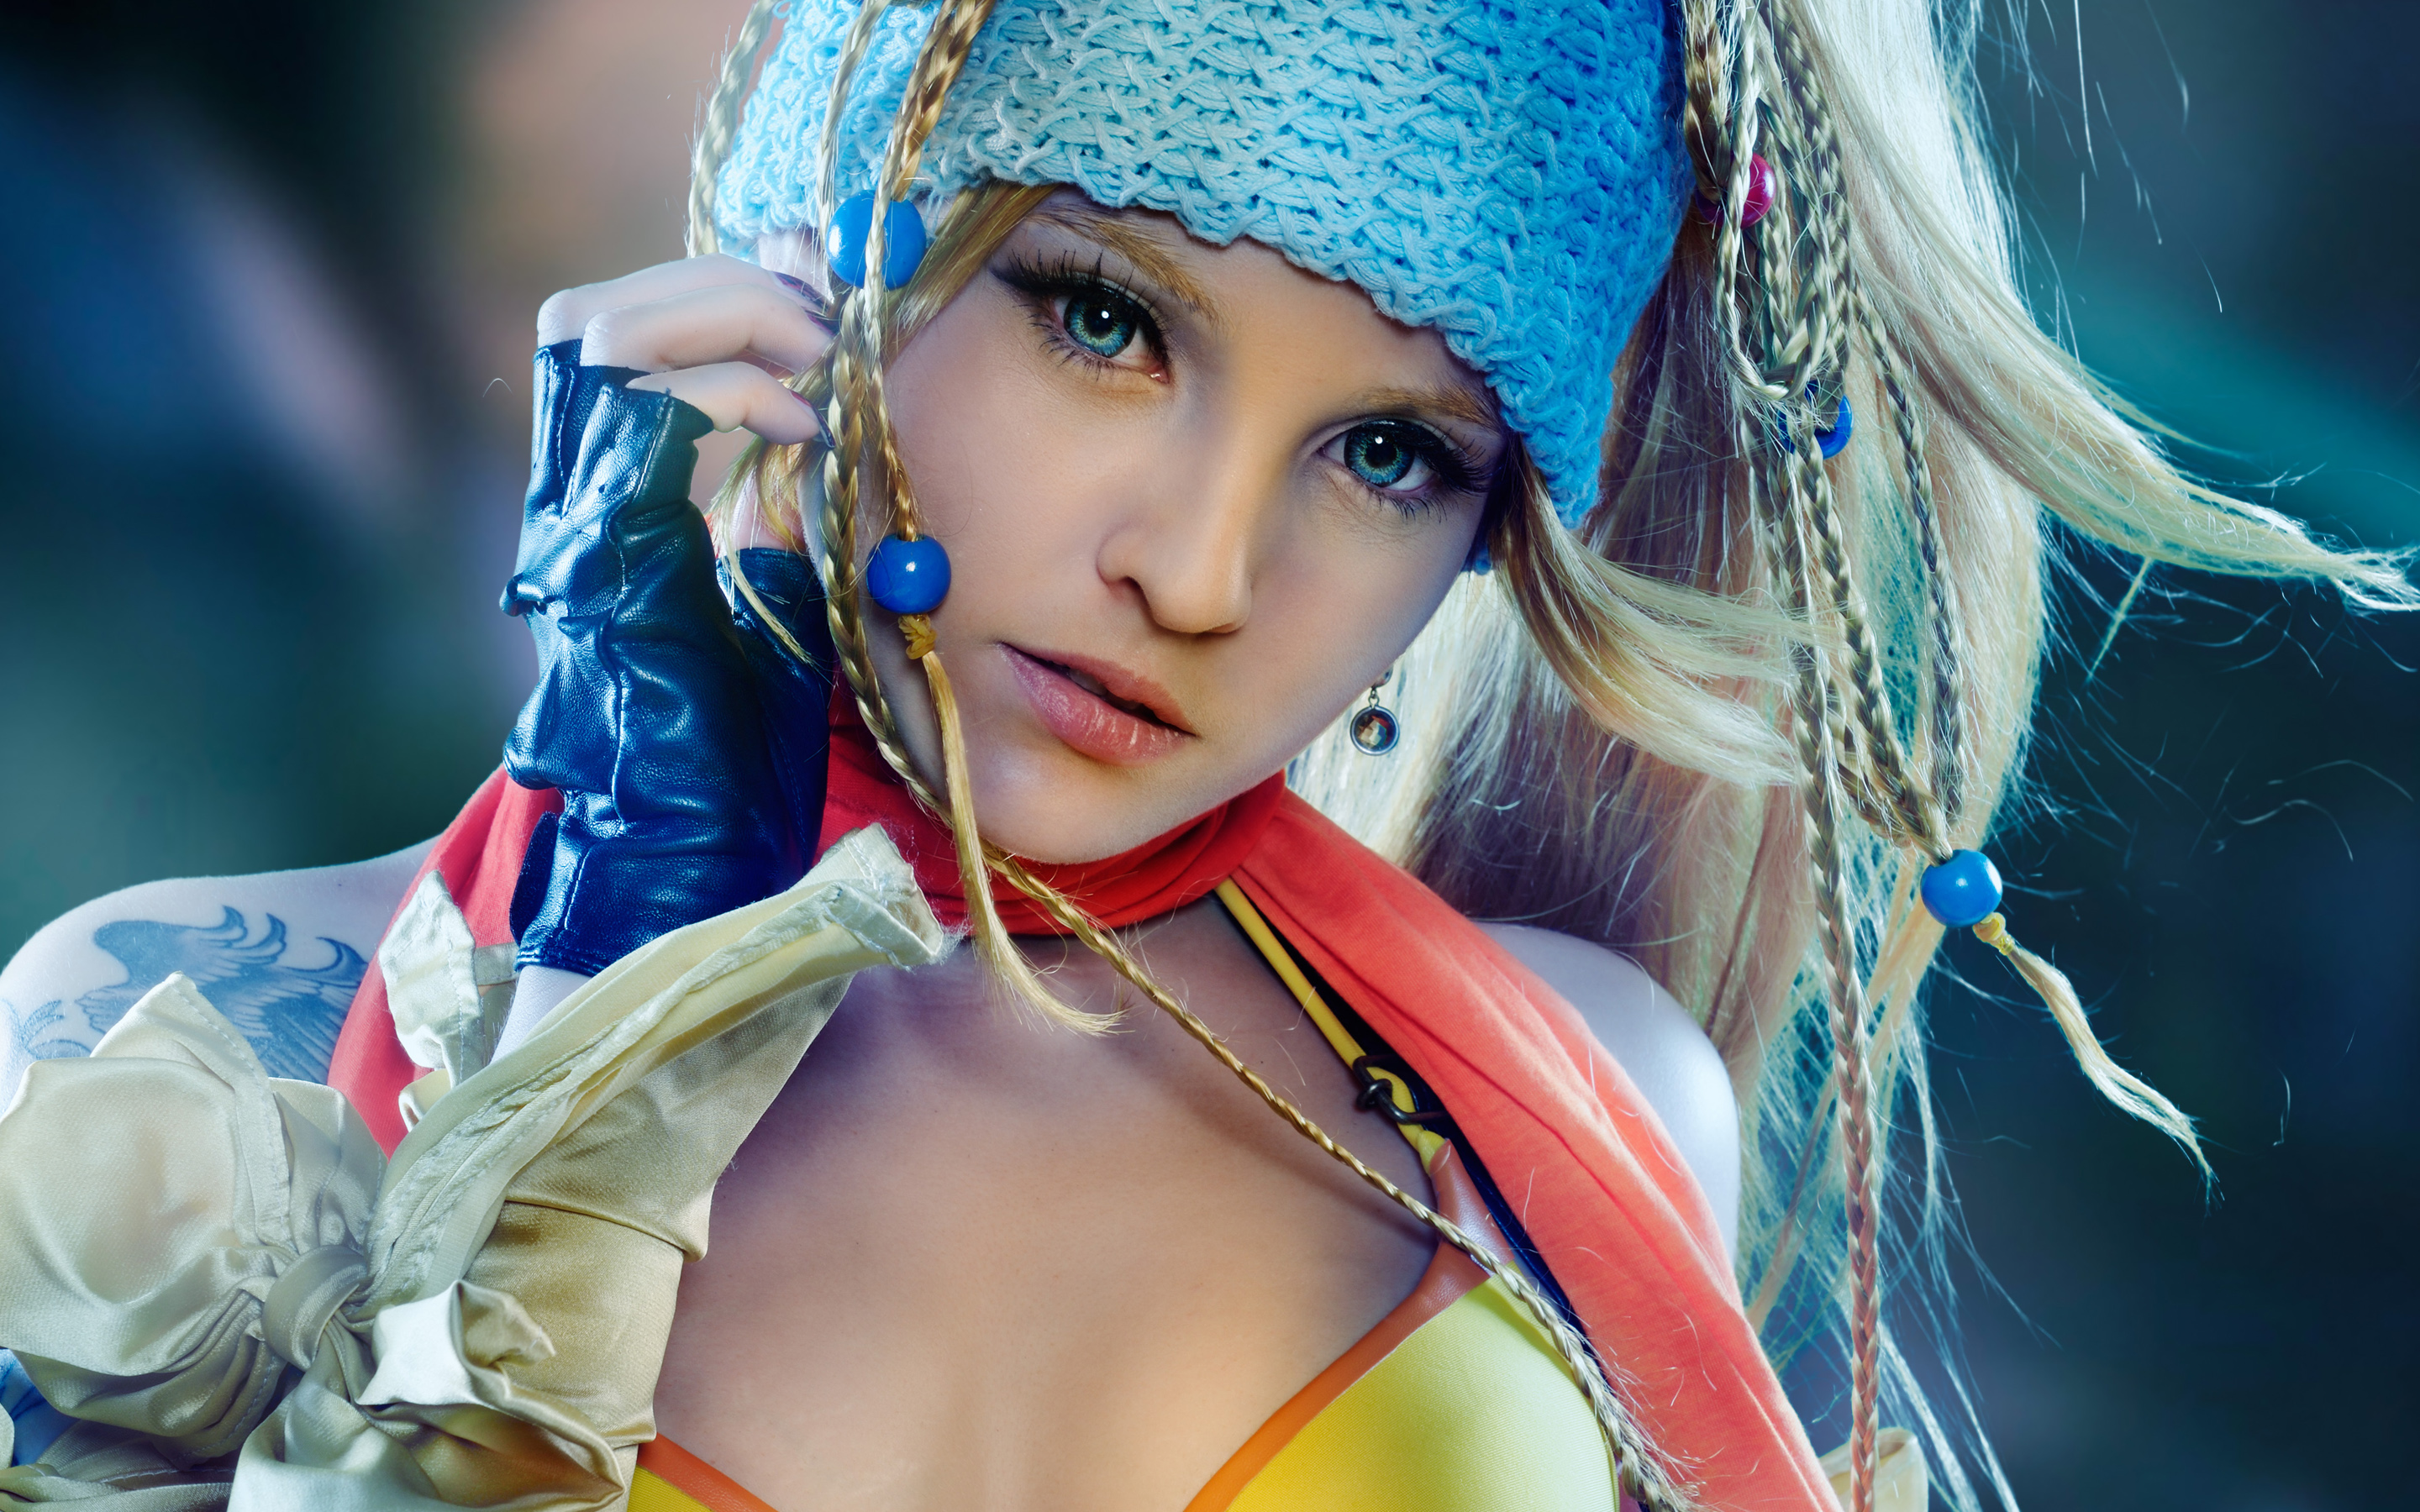 Rikku in Final Fantasy